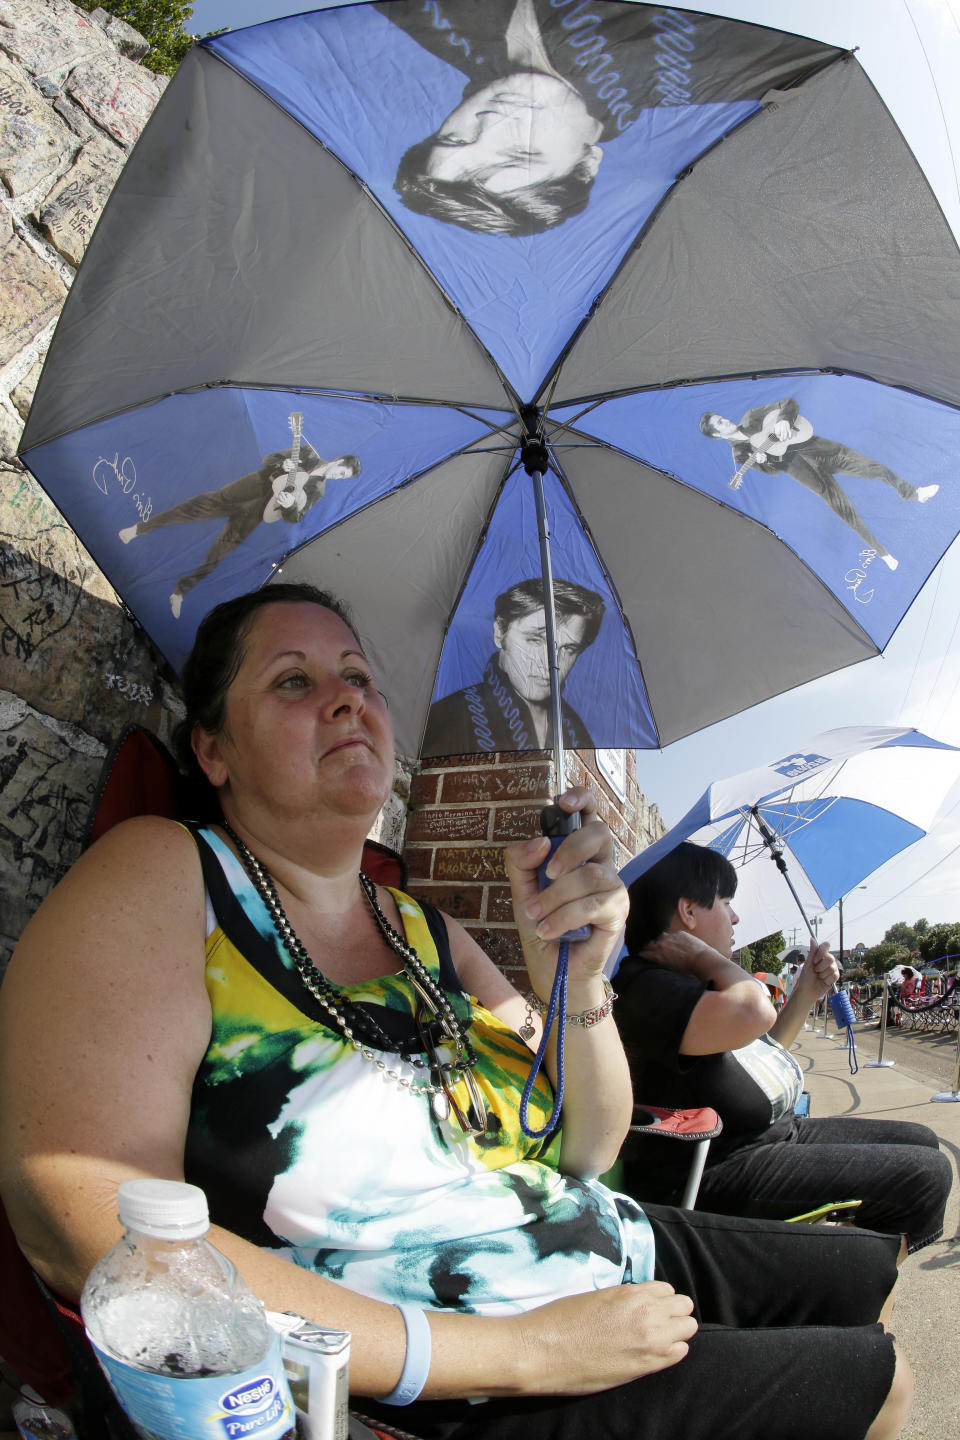 Elvis Presley fan Mary Ann Seiber, from Knoxville, Tenn., waits in line outside Graceland, Presley's Memphis, Tenn. home, on Wednesday, Aug. 15, 2012. Fans are lined up to take part in the annual candlelight vigil marking the 35th anniversary of Presley's death. (AP Photo/Mark Humphrey)